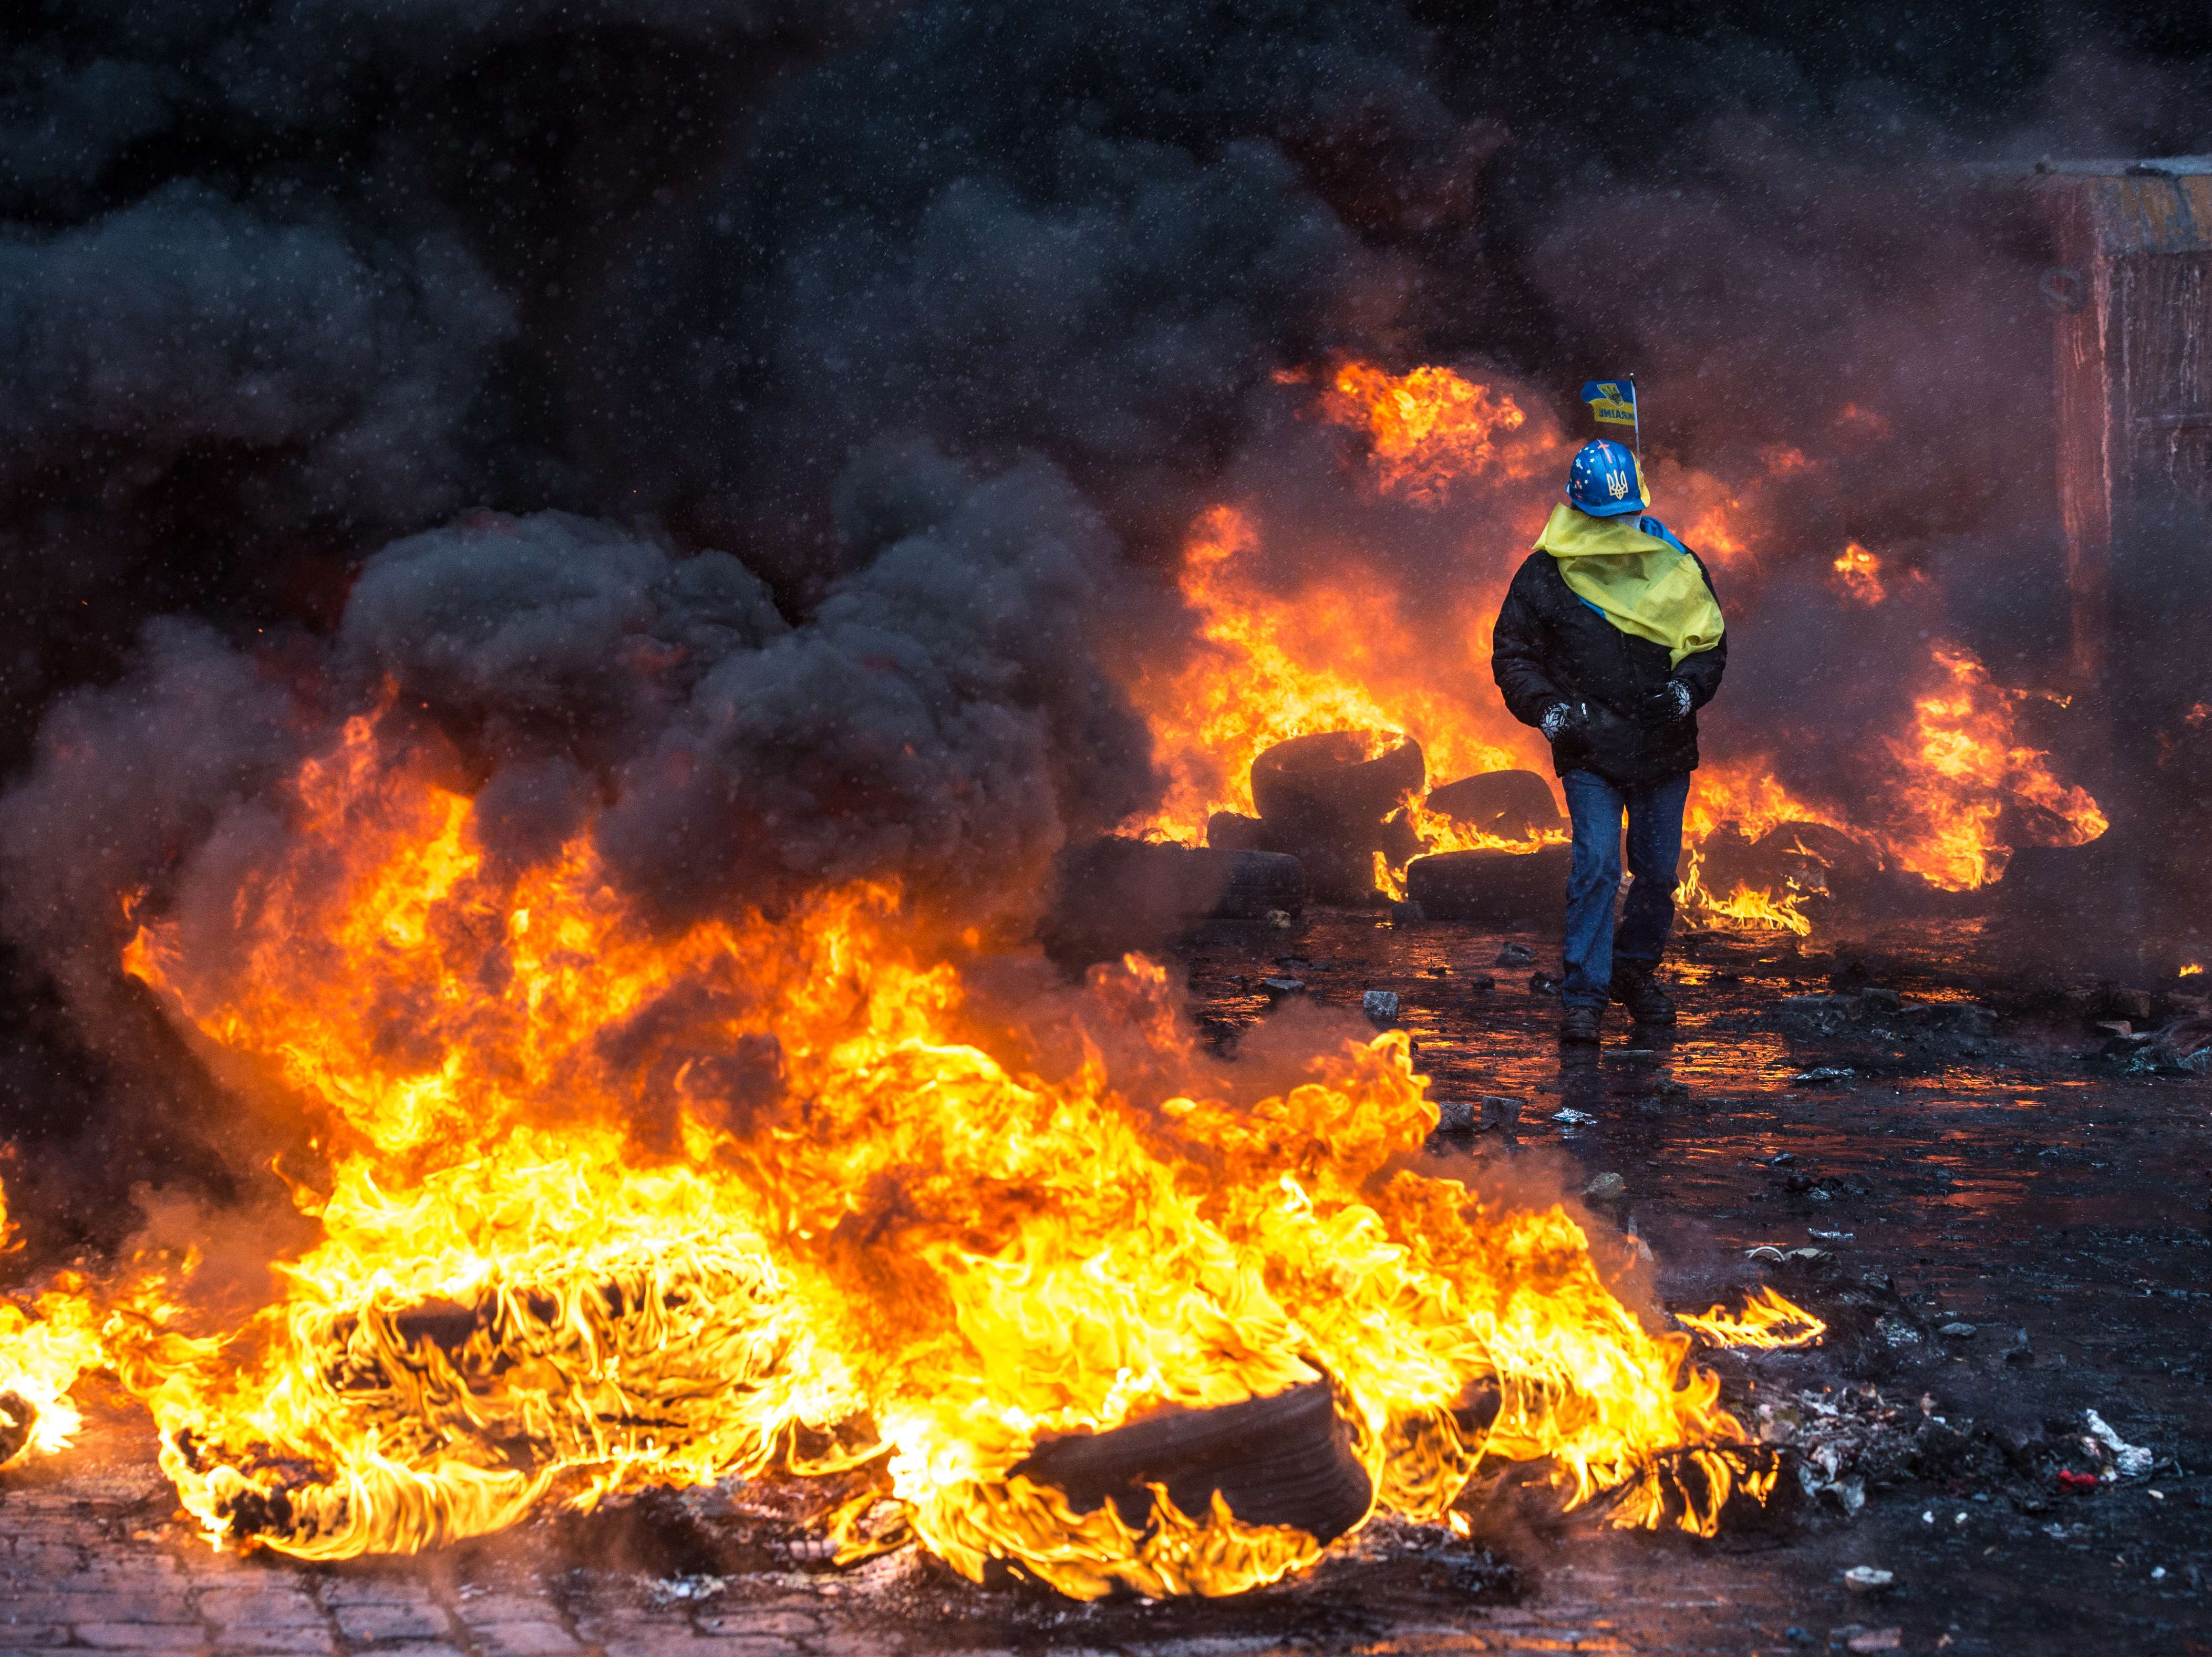 A protestor walks in the near burning tyres during clashes with riot police in Kiev on January 22, 2014. At least two activists were shot dead today as Ukrainian police stormed protesters' barricades in Kiev, the first fatalities in two months of anti-government protests. Pitched battles raged in the centre of the Ukrainian capital as protesters hurled stones at police and the security forces responded with tear gas and rubber bullets.  (AFP PHOTO/ DMITRY SEREBRYAKOV)